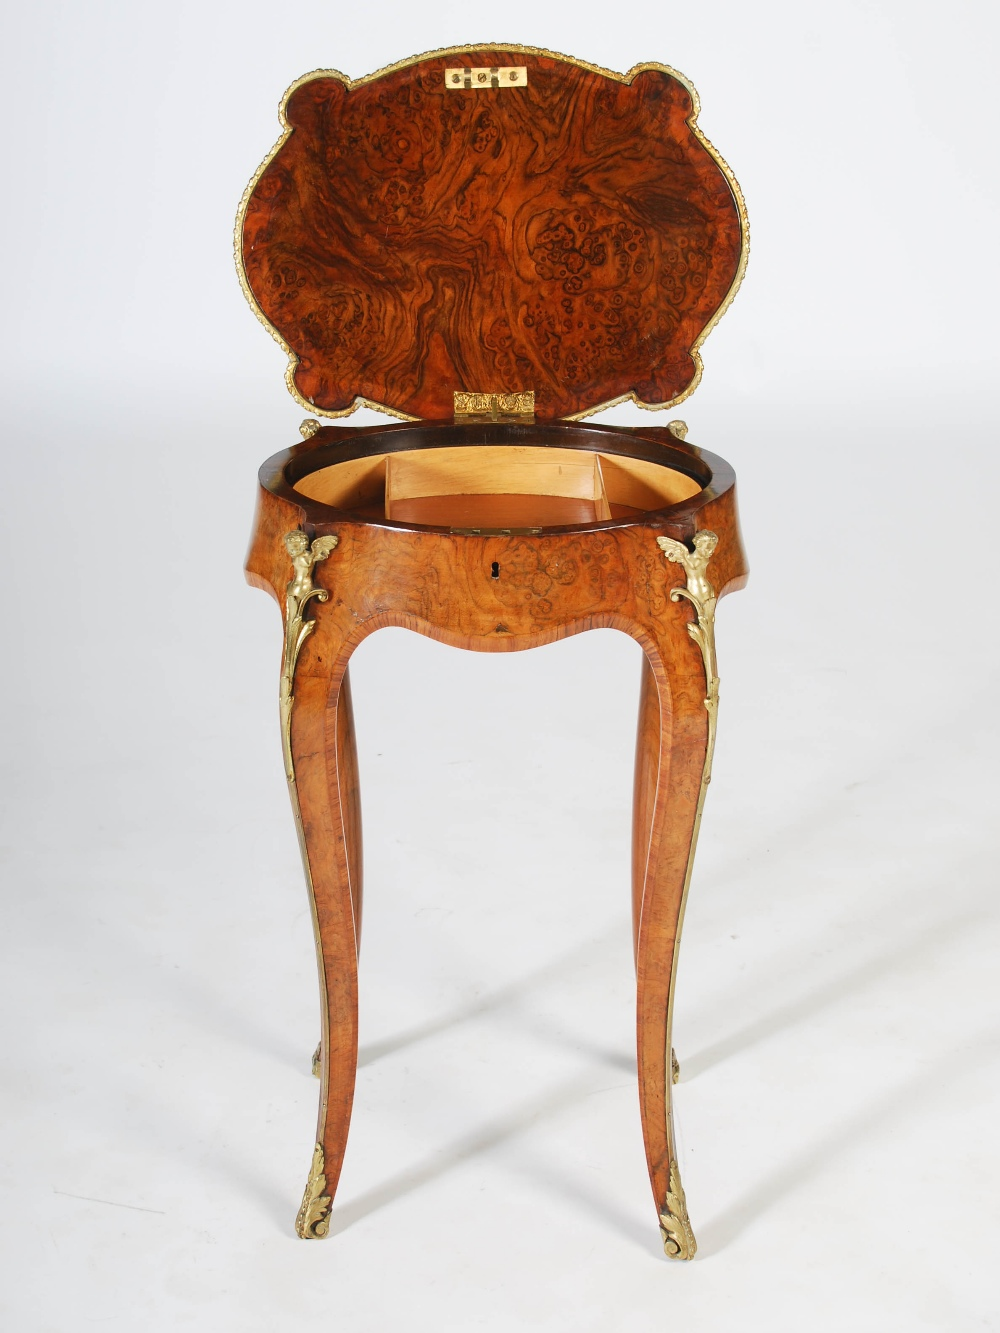 Lot 67 - A late 19th century walnut and ormolu mounted work table, the hinged oval top opening to a fitted